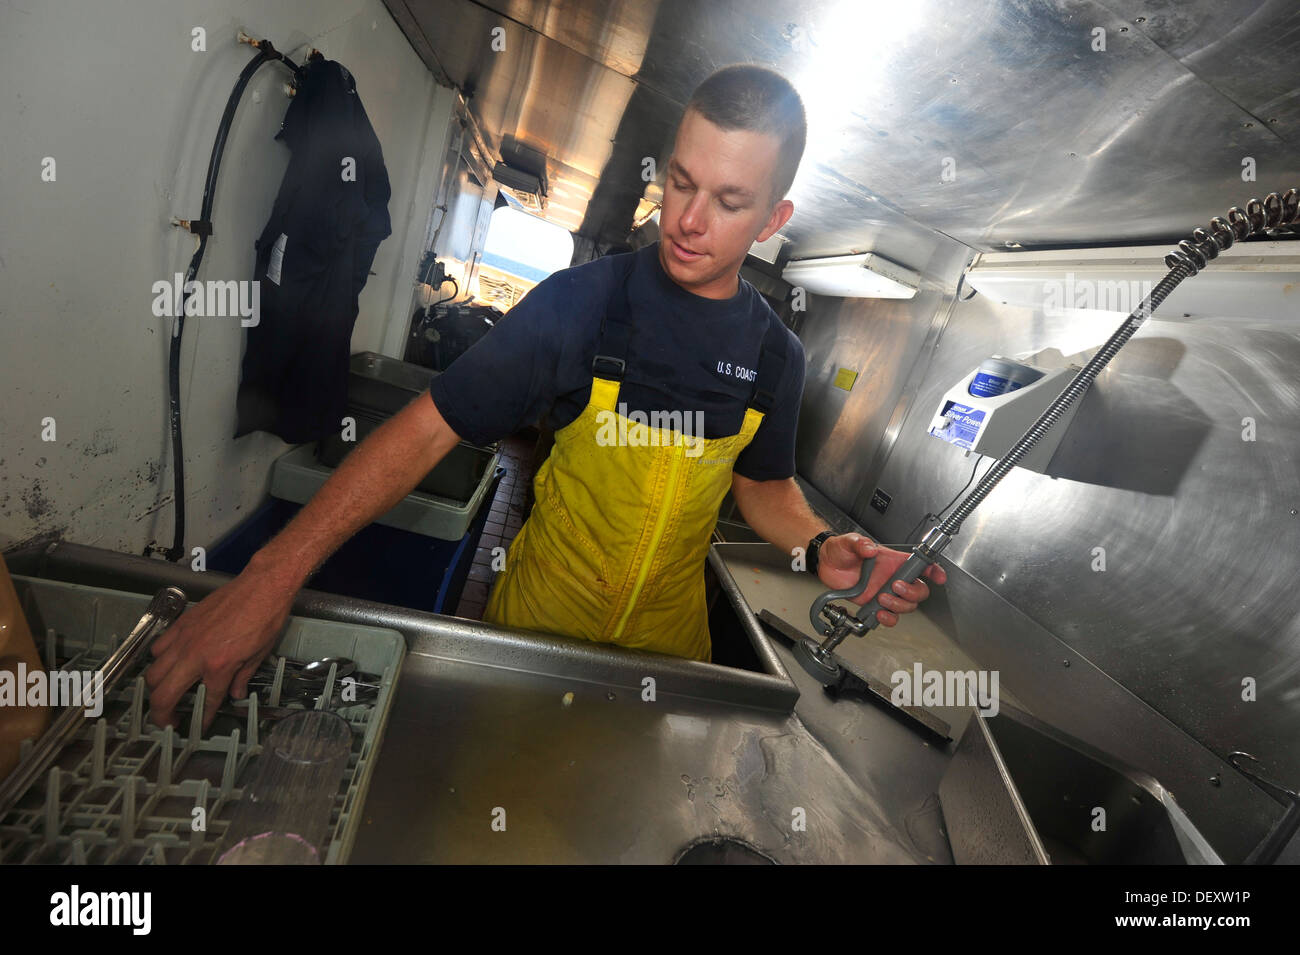 Officer Candidate Tripp Haas washes dishes in the scullery aboard the Coast Guard Barque Eagle on Wednesday, Sept. 11, 2013. Trainees aboard the Eagle cycle through numerous ship positions to develop a deeper understanding of what it takes to operate a Co - Stock Image